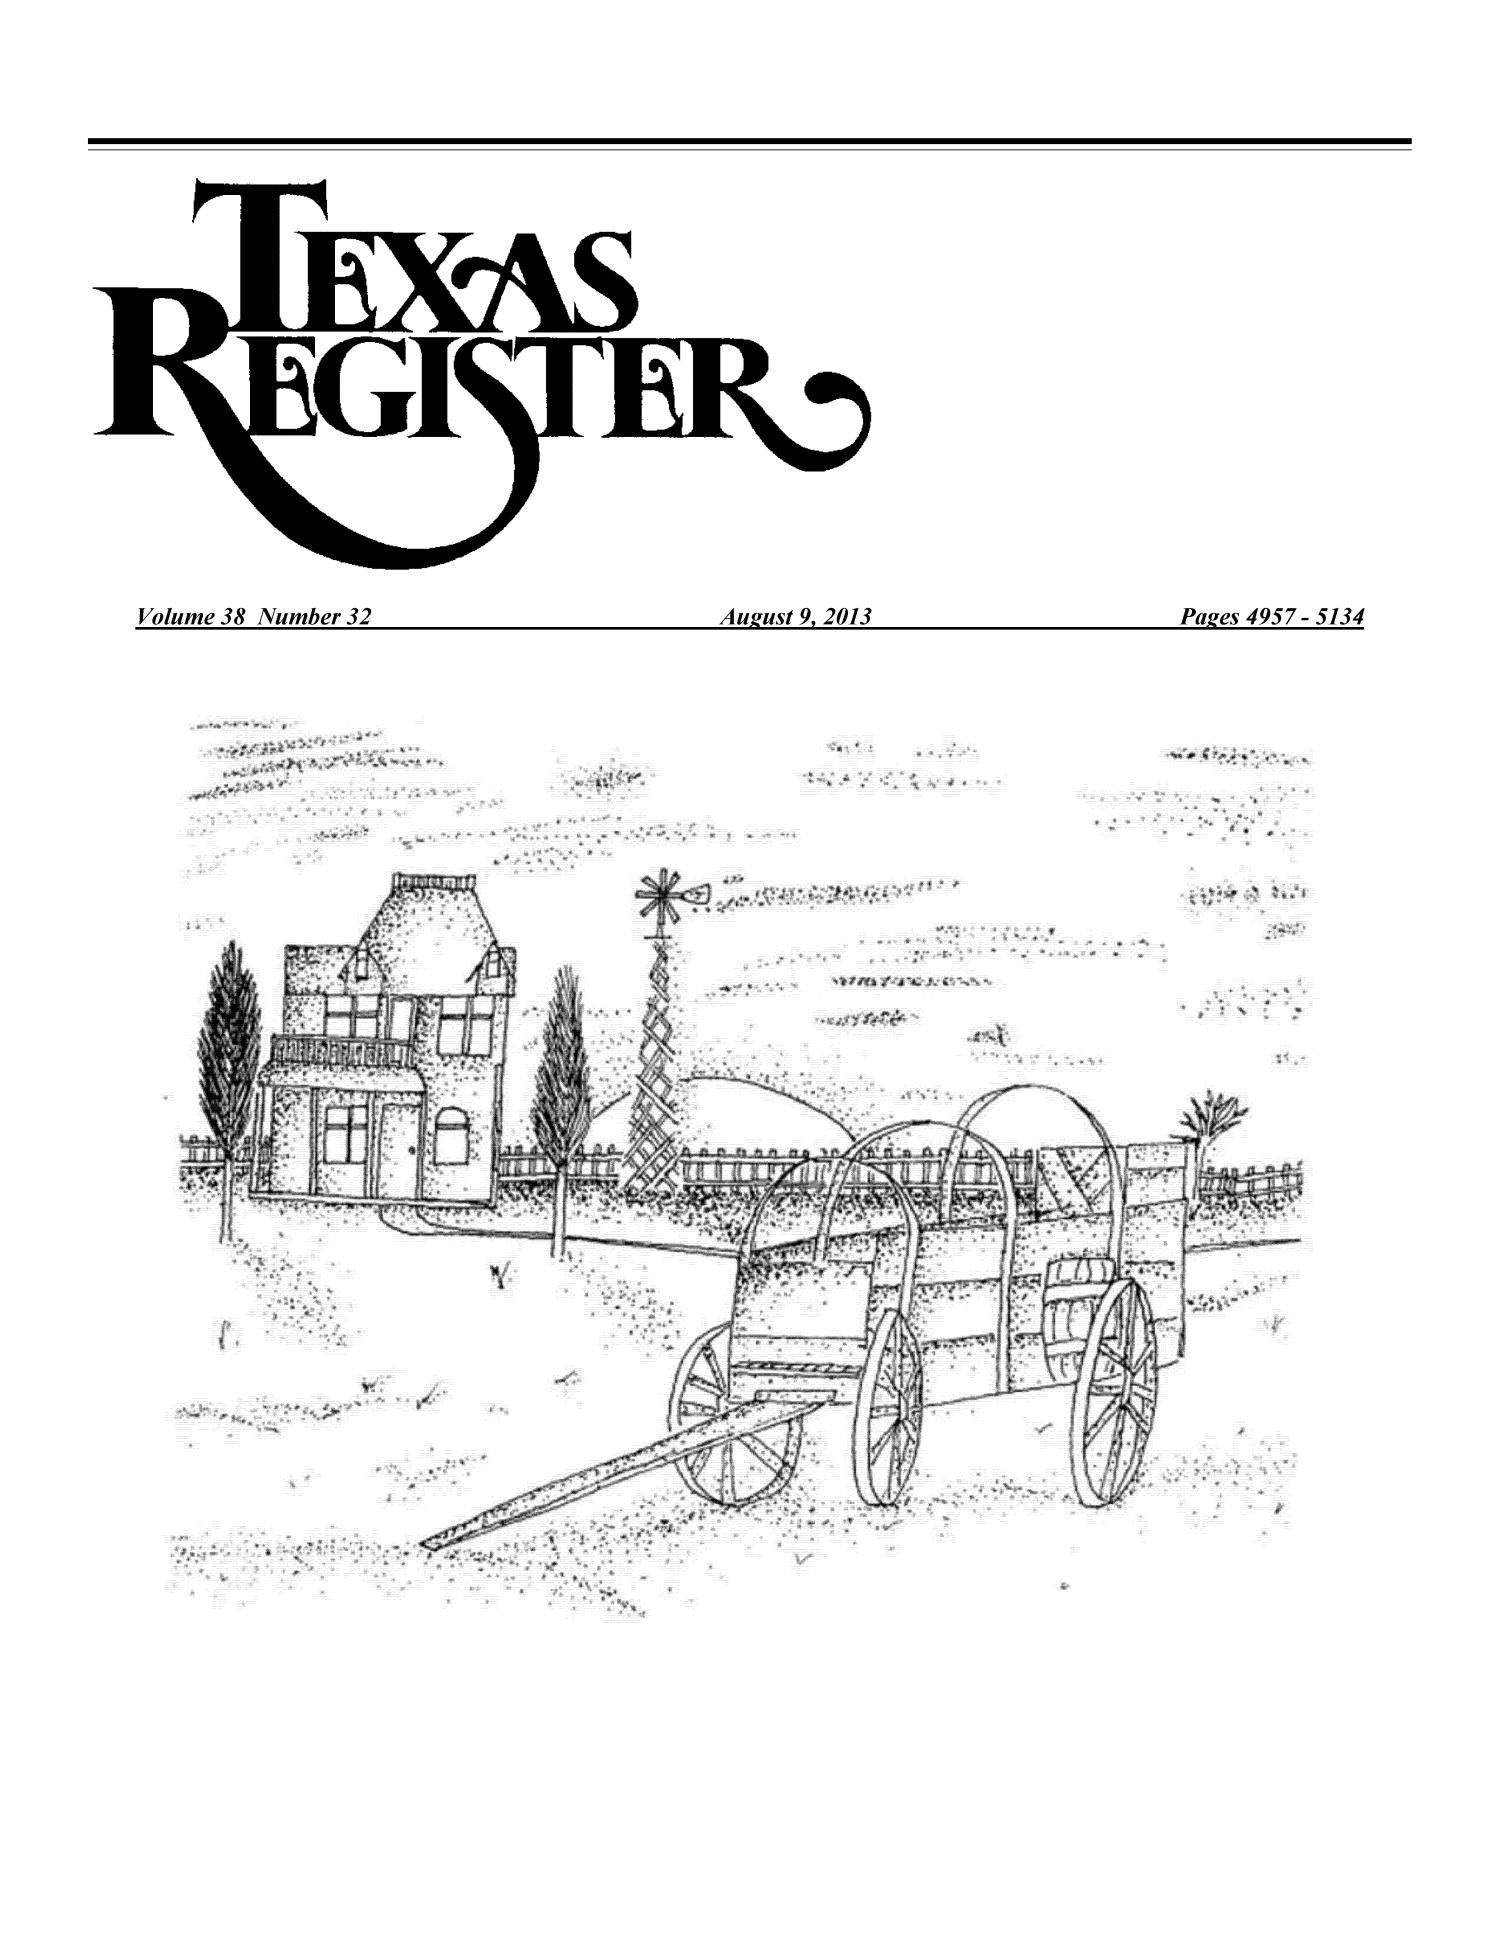 Texas Register, Volume 38, Number 32, Pages 4957-5134, August 9, 2013                                                                                                      Title Page